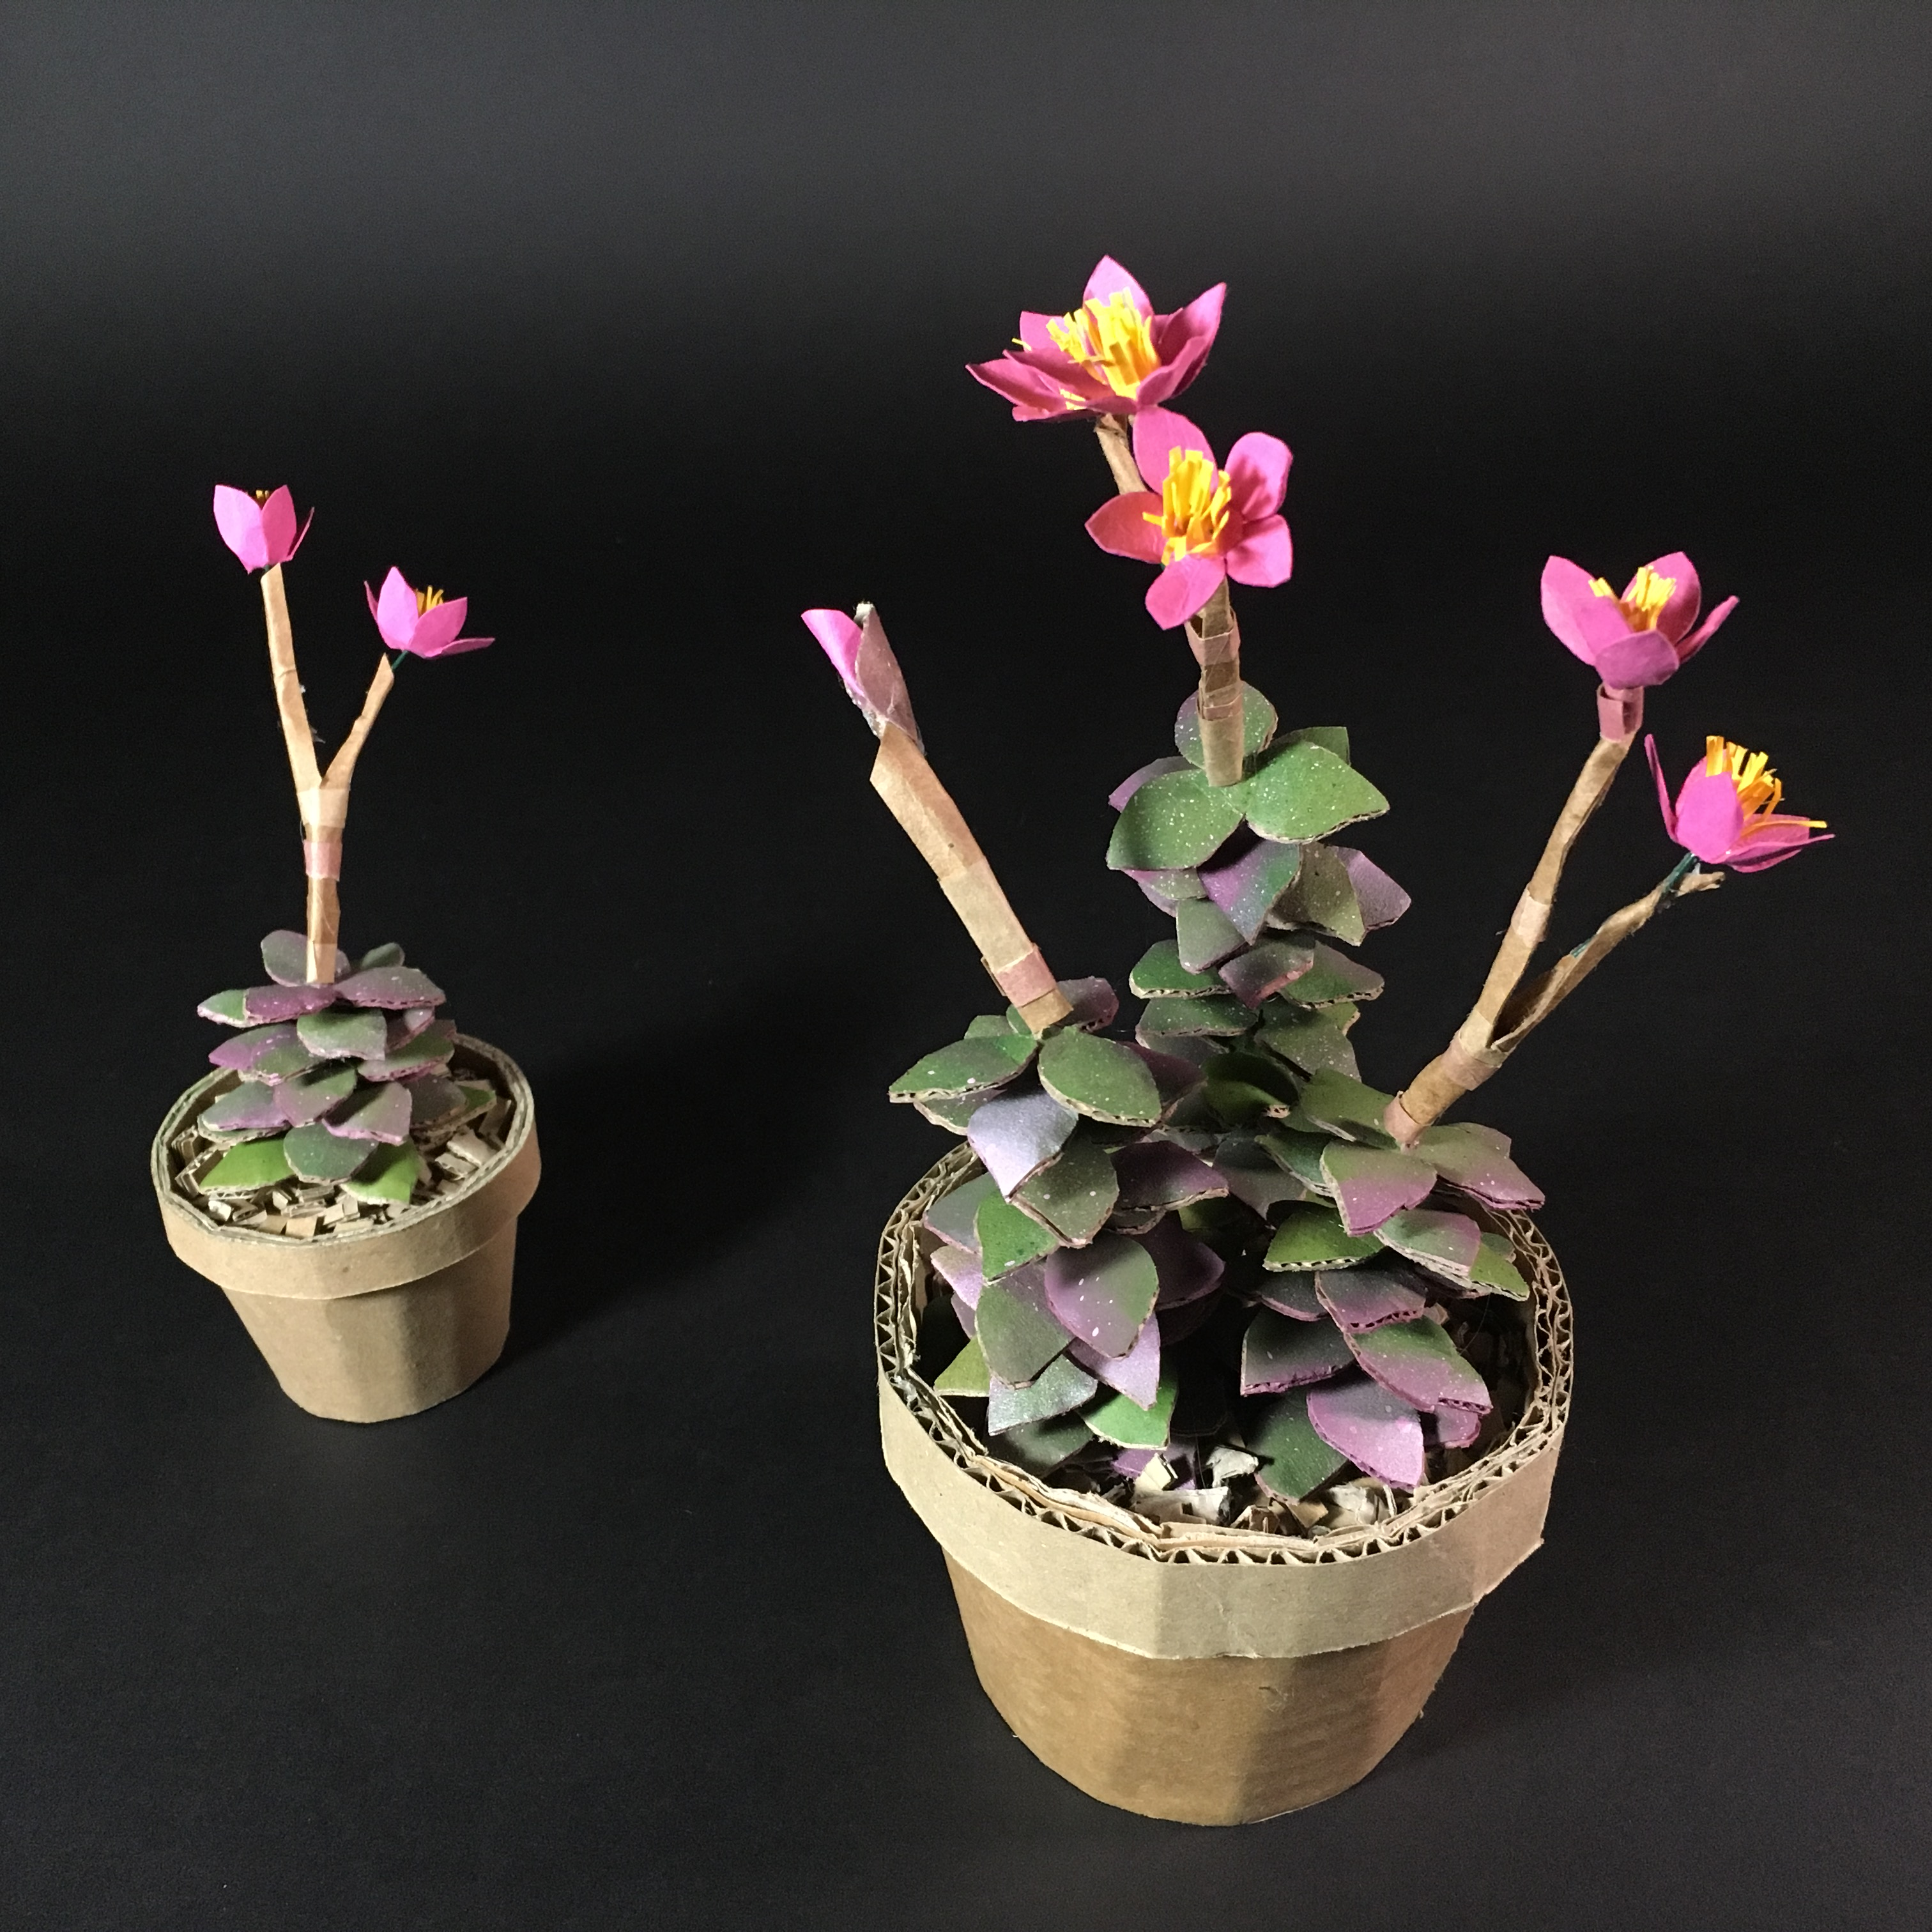 Flowers created out of cardboard by Lottie Smith